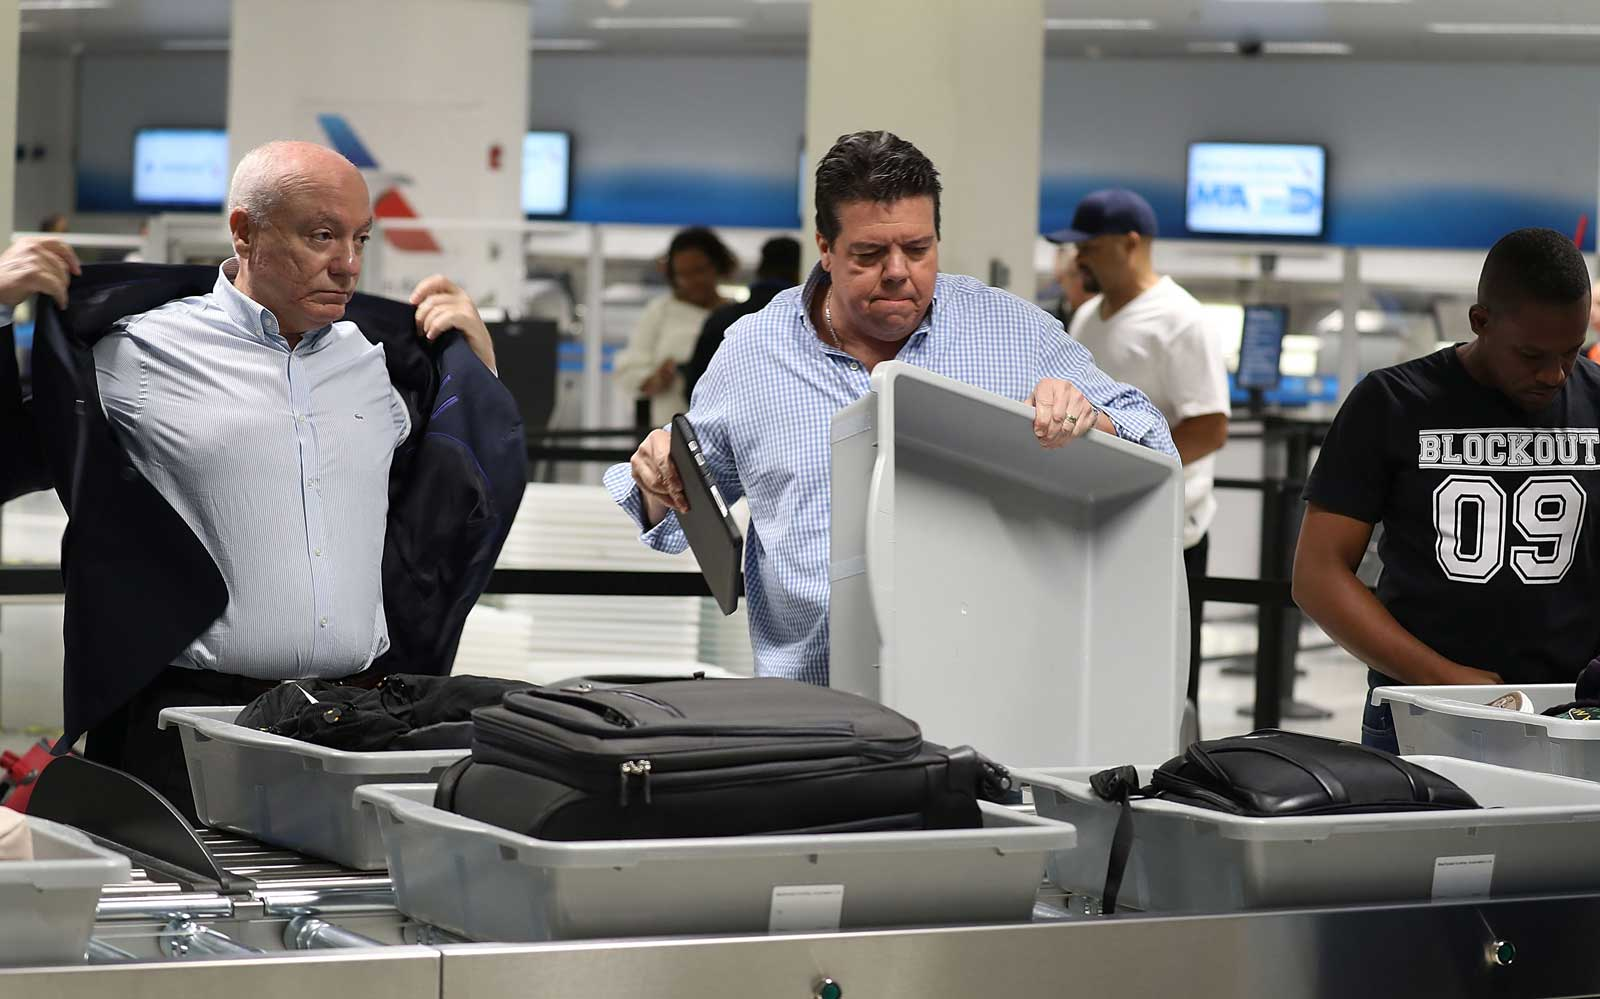 TSA's New Scanners Will Let You Keep Your Laptop in Your Carry-on